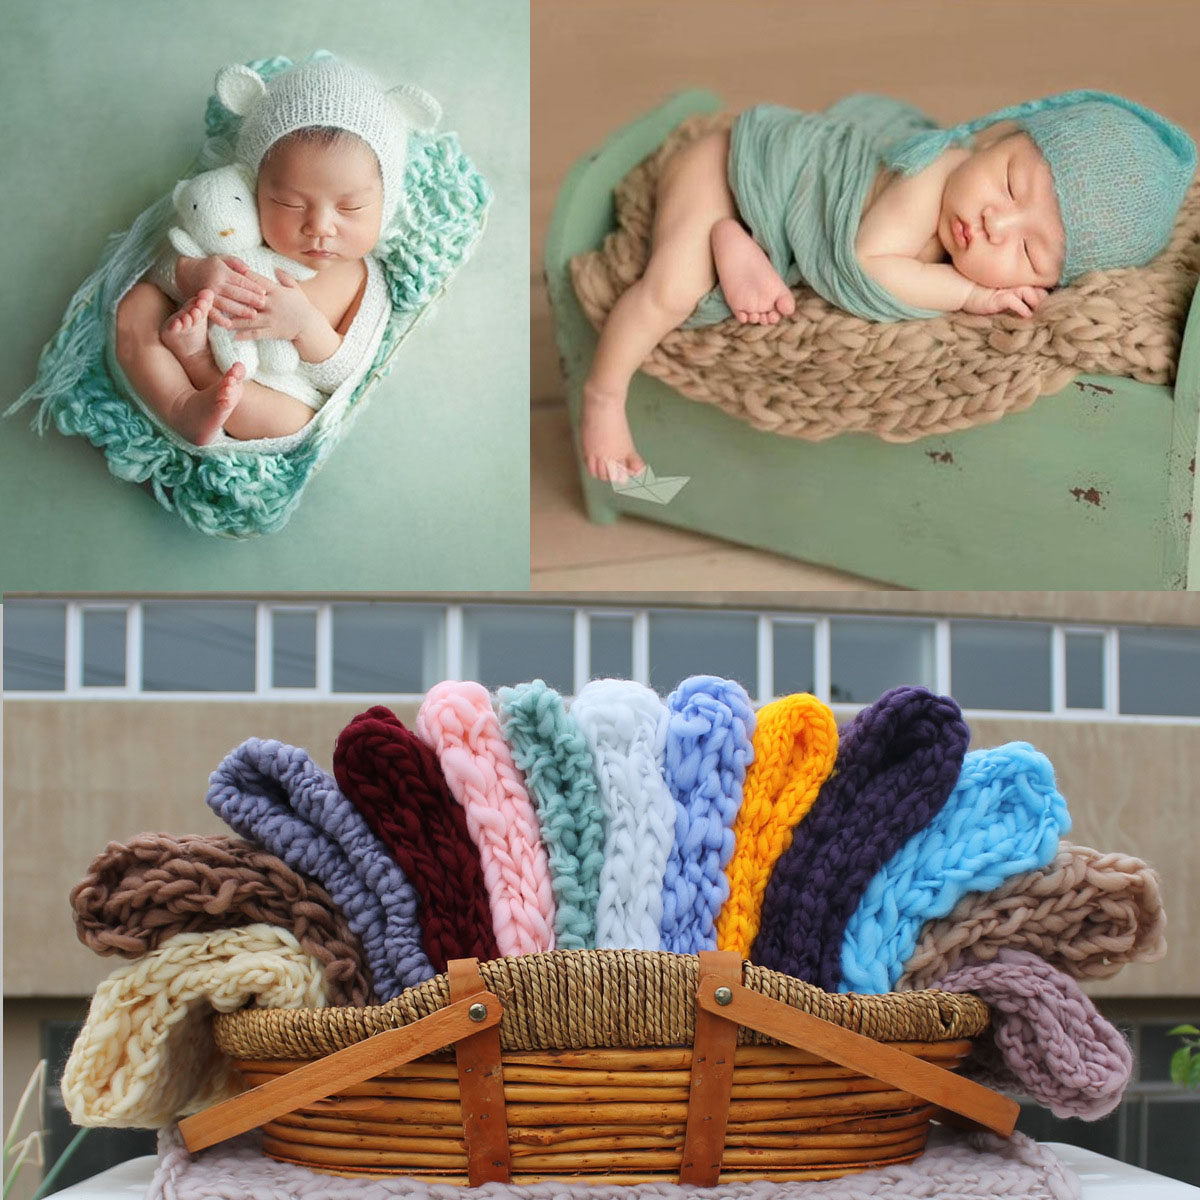 Children's Photography Blanket Thick Line Square Photo Props Background Blanket Newborn Photo Mat Blanket Knitting Solid Color knitting warmth flower plaid hollowed square sofa blanket